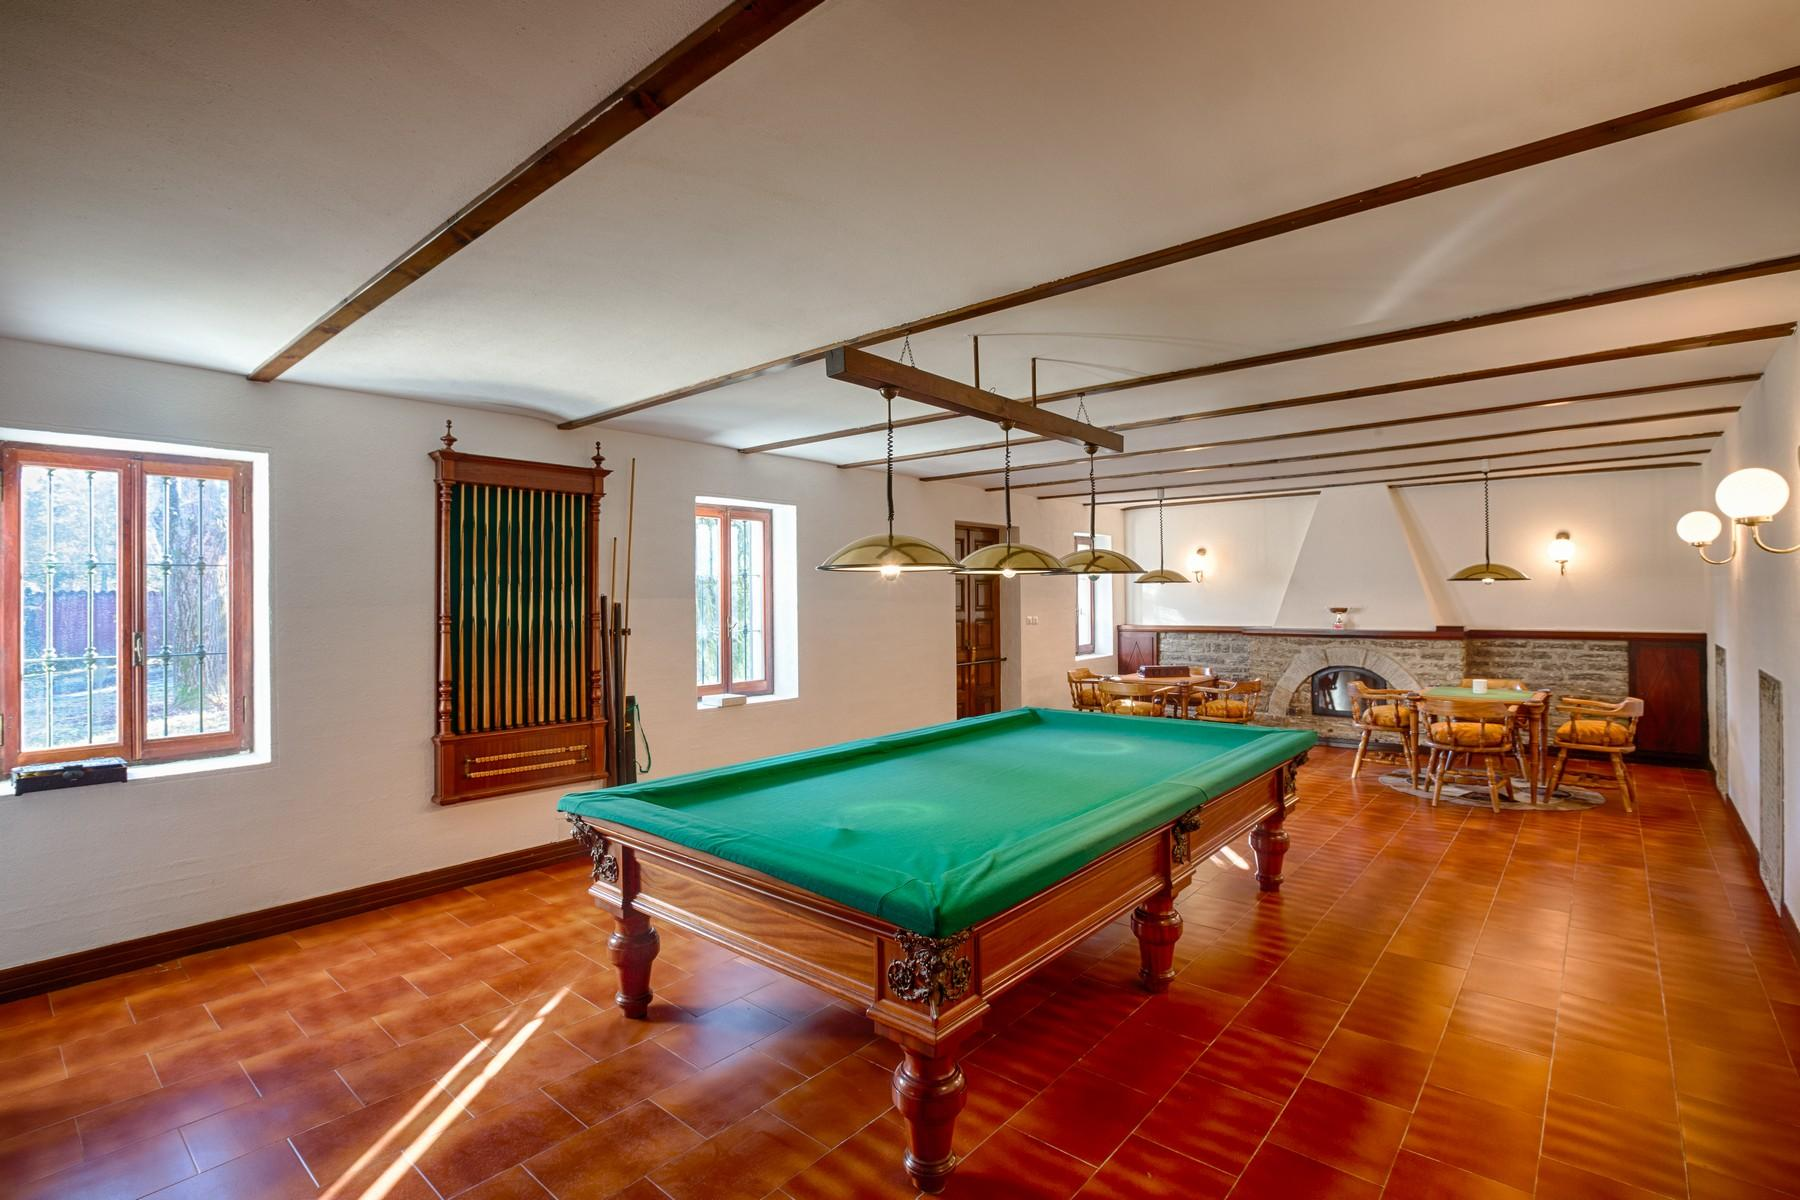 Incomparable farmhouse in the heart of the Monferrato region - 11